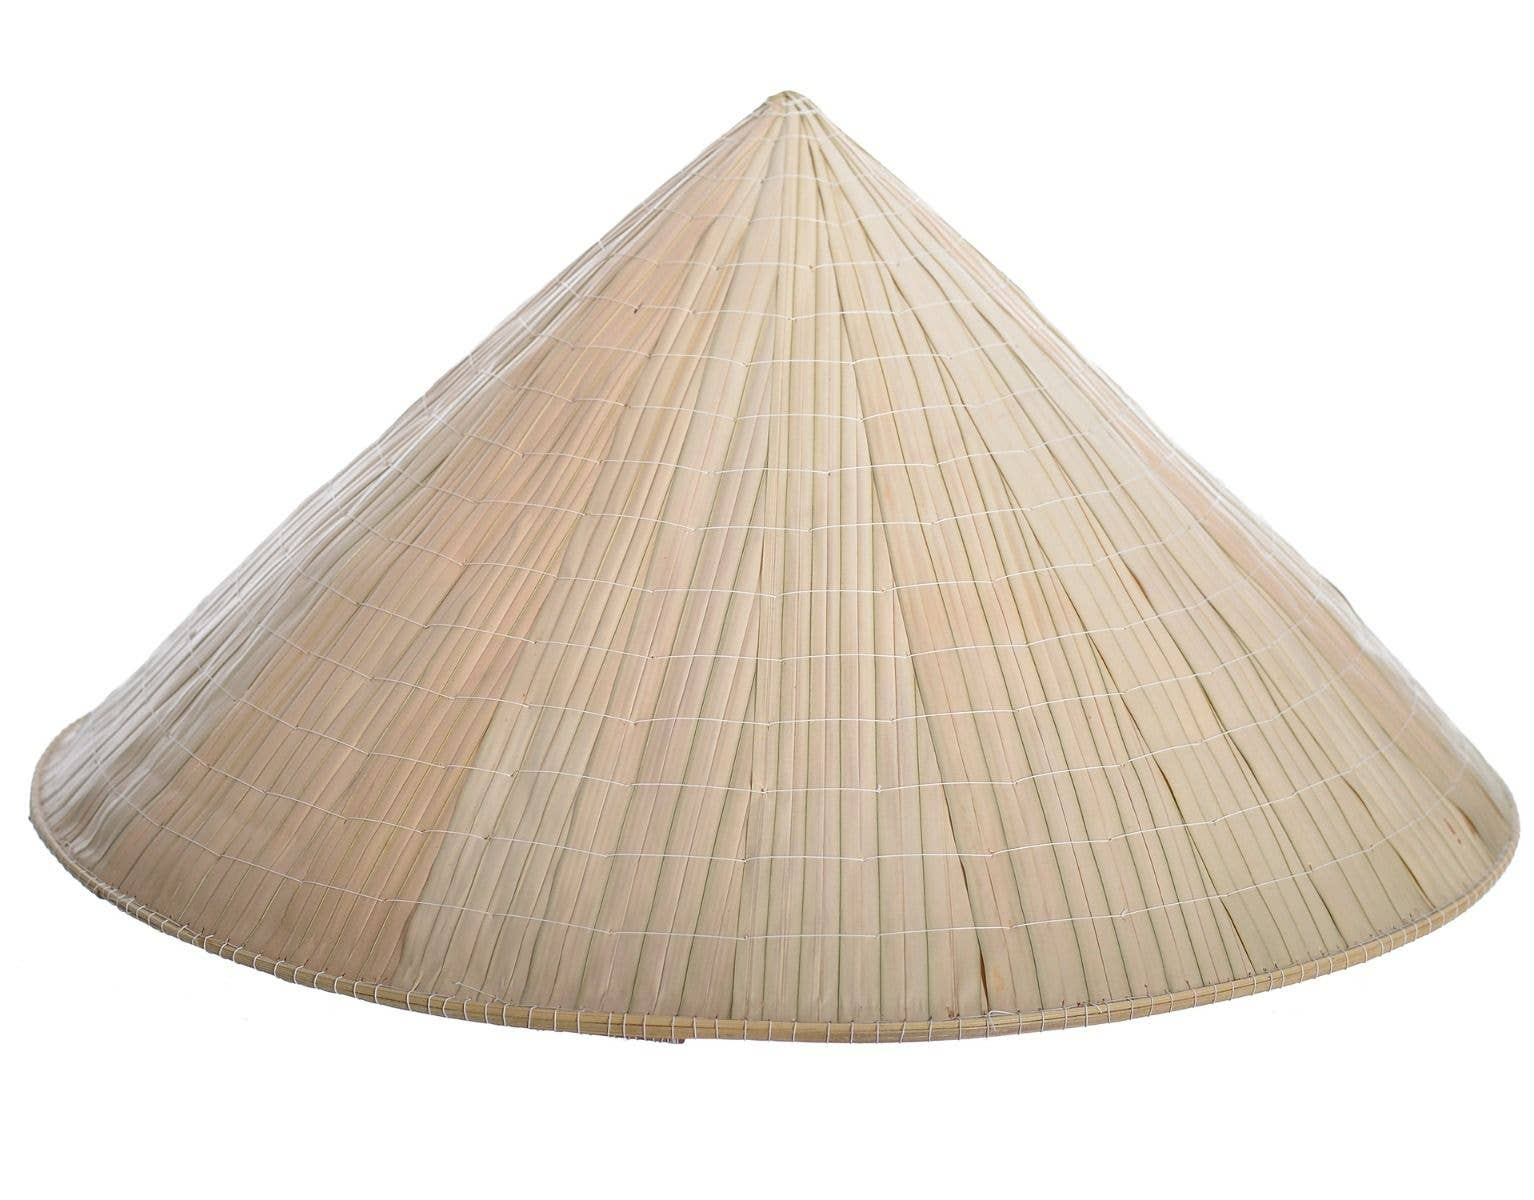 d9615a65f Sweida Bamboo Chinese Coolie Rice Hat Costume Accessory Close Image